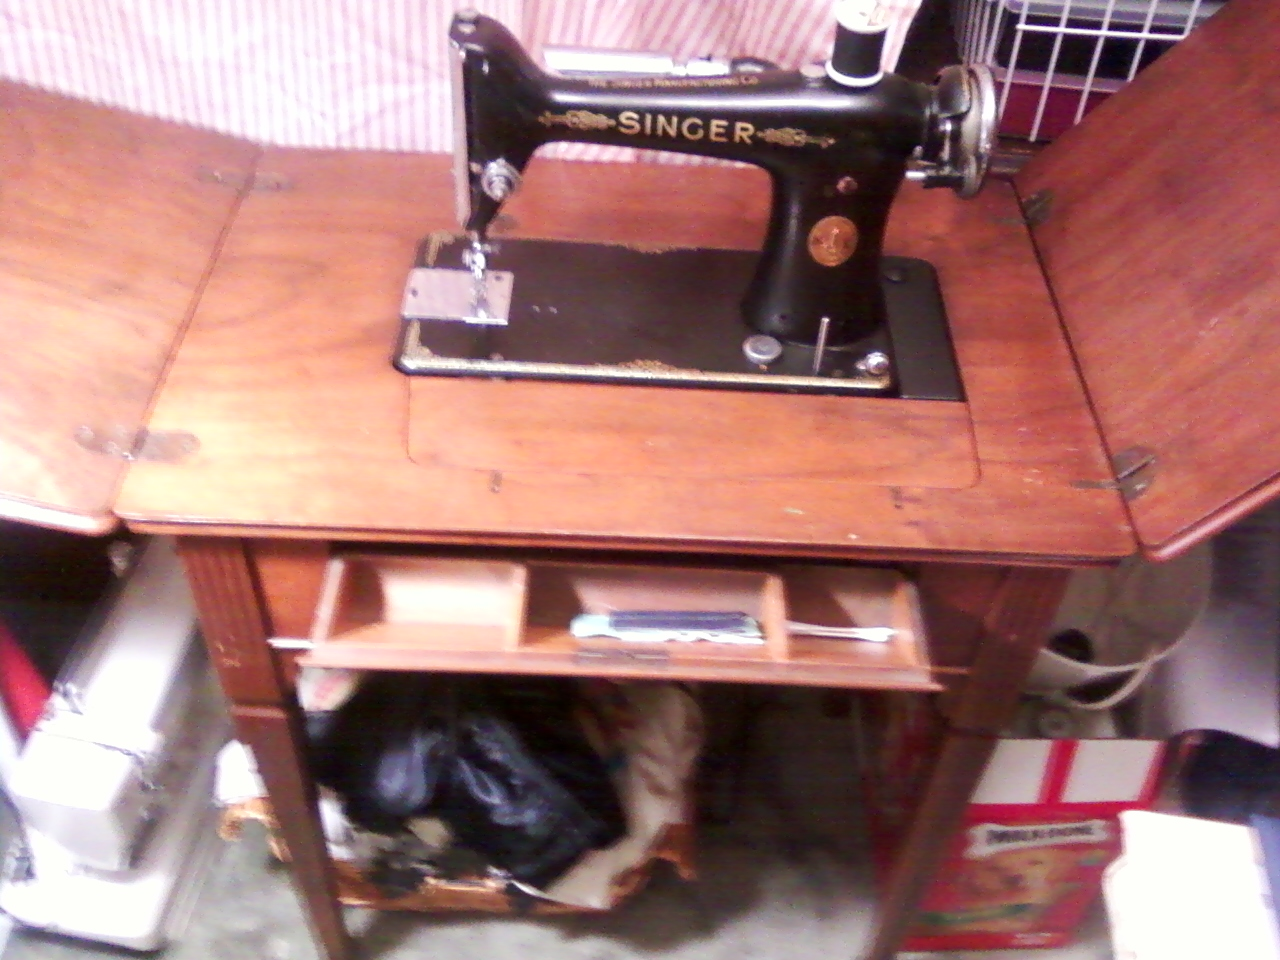 Tip out drawer holds manual, attachments & accessories, Singer 101 in  library table